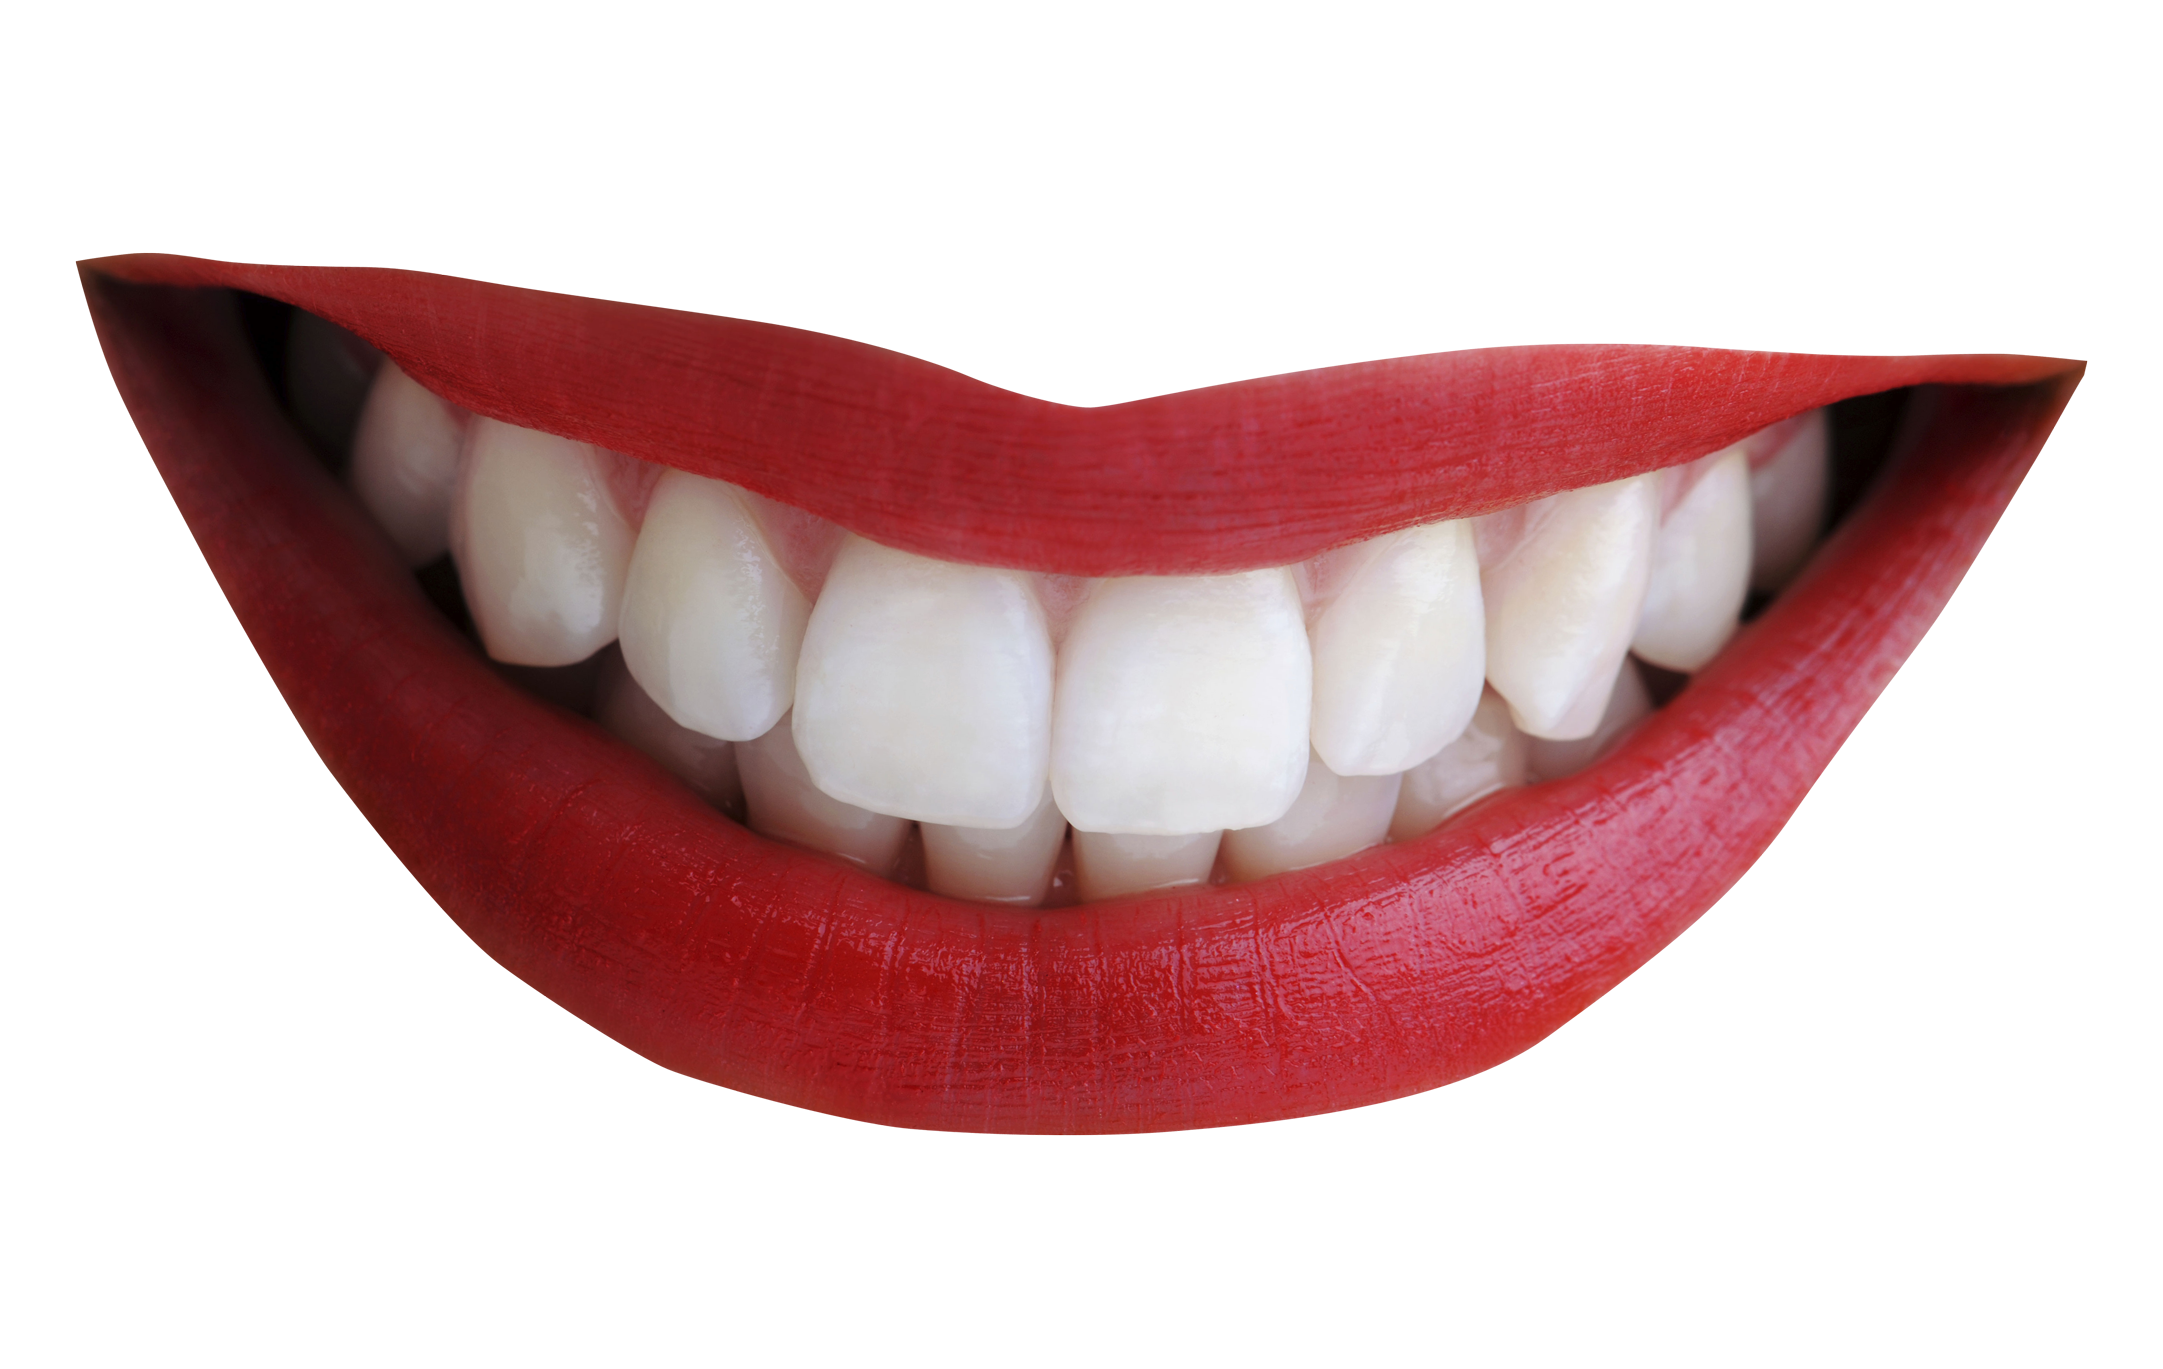 Teeth PNG Transparent Image - Smile Lips PNG - PNG HD Teeth Smile - Teeth Smile PNG HD